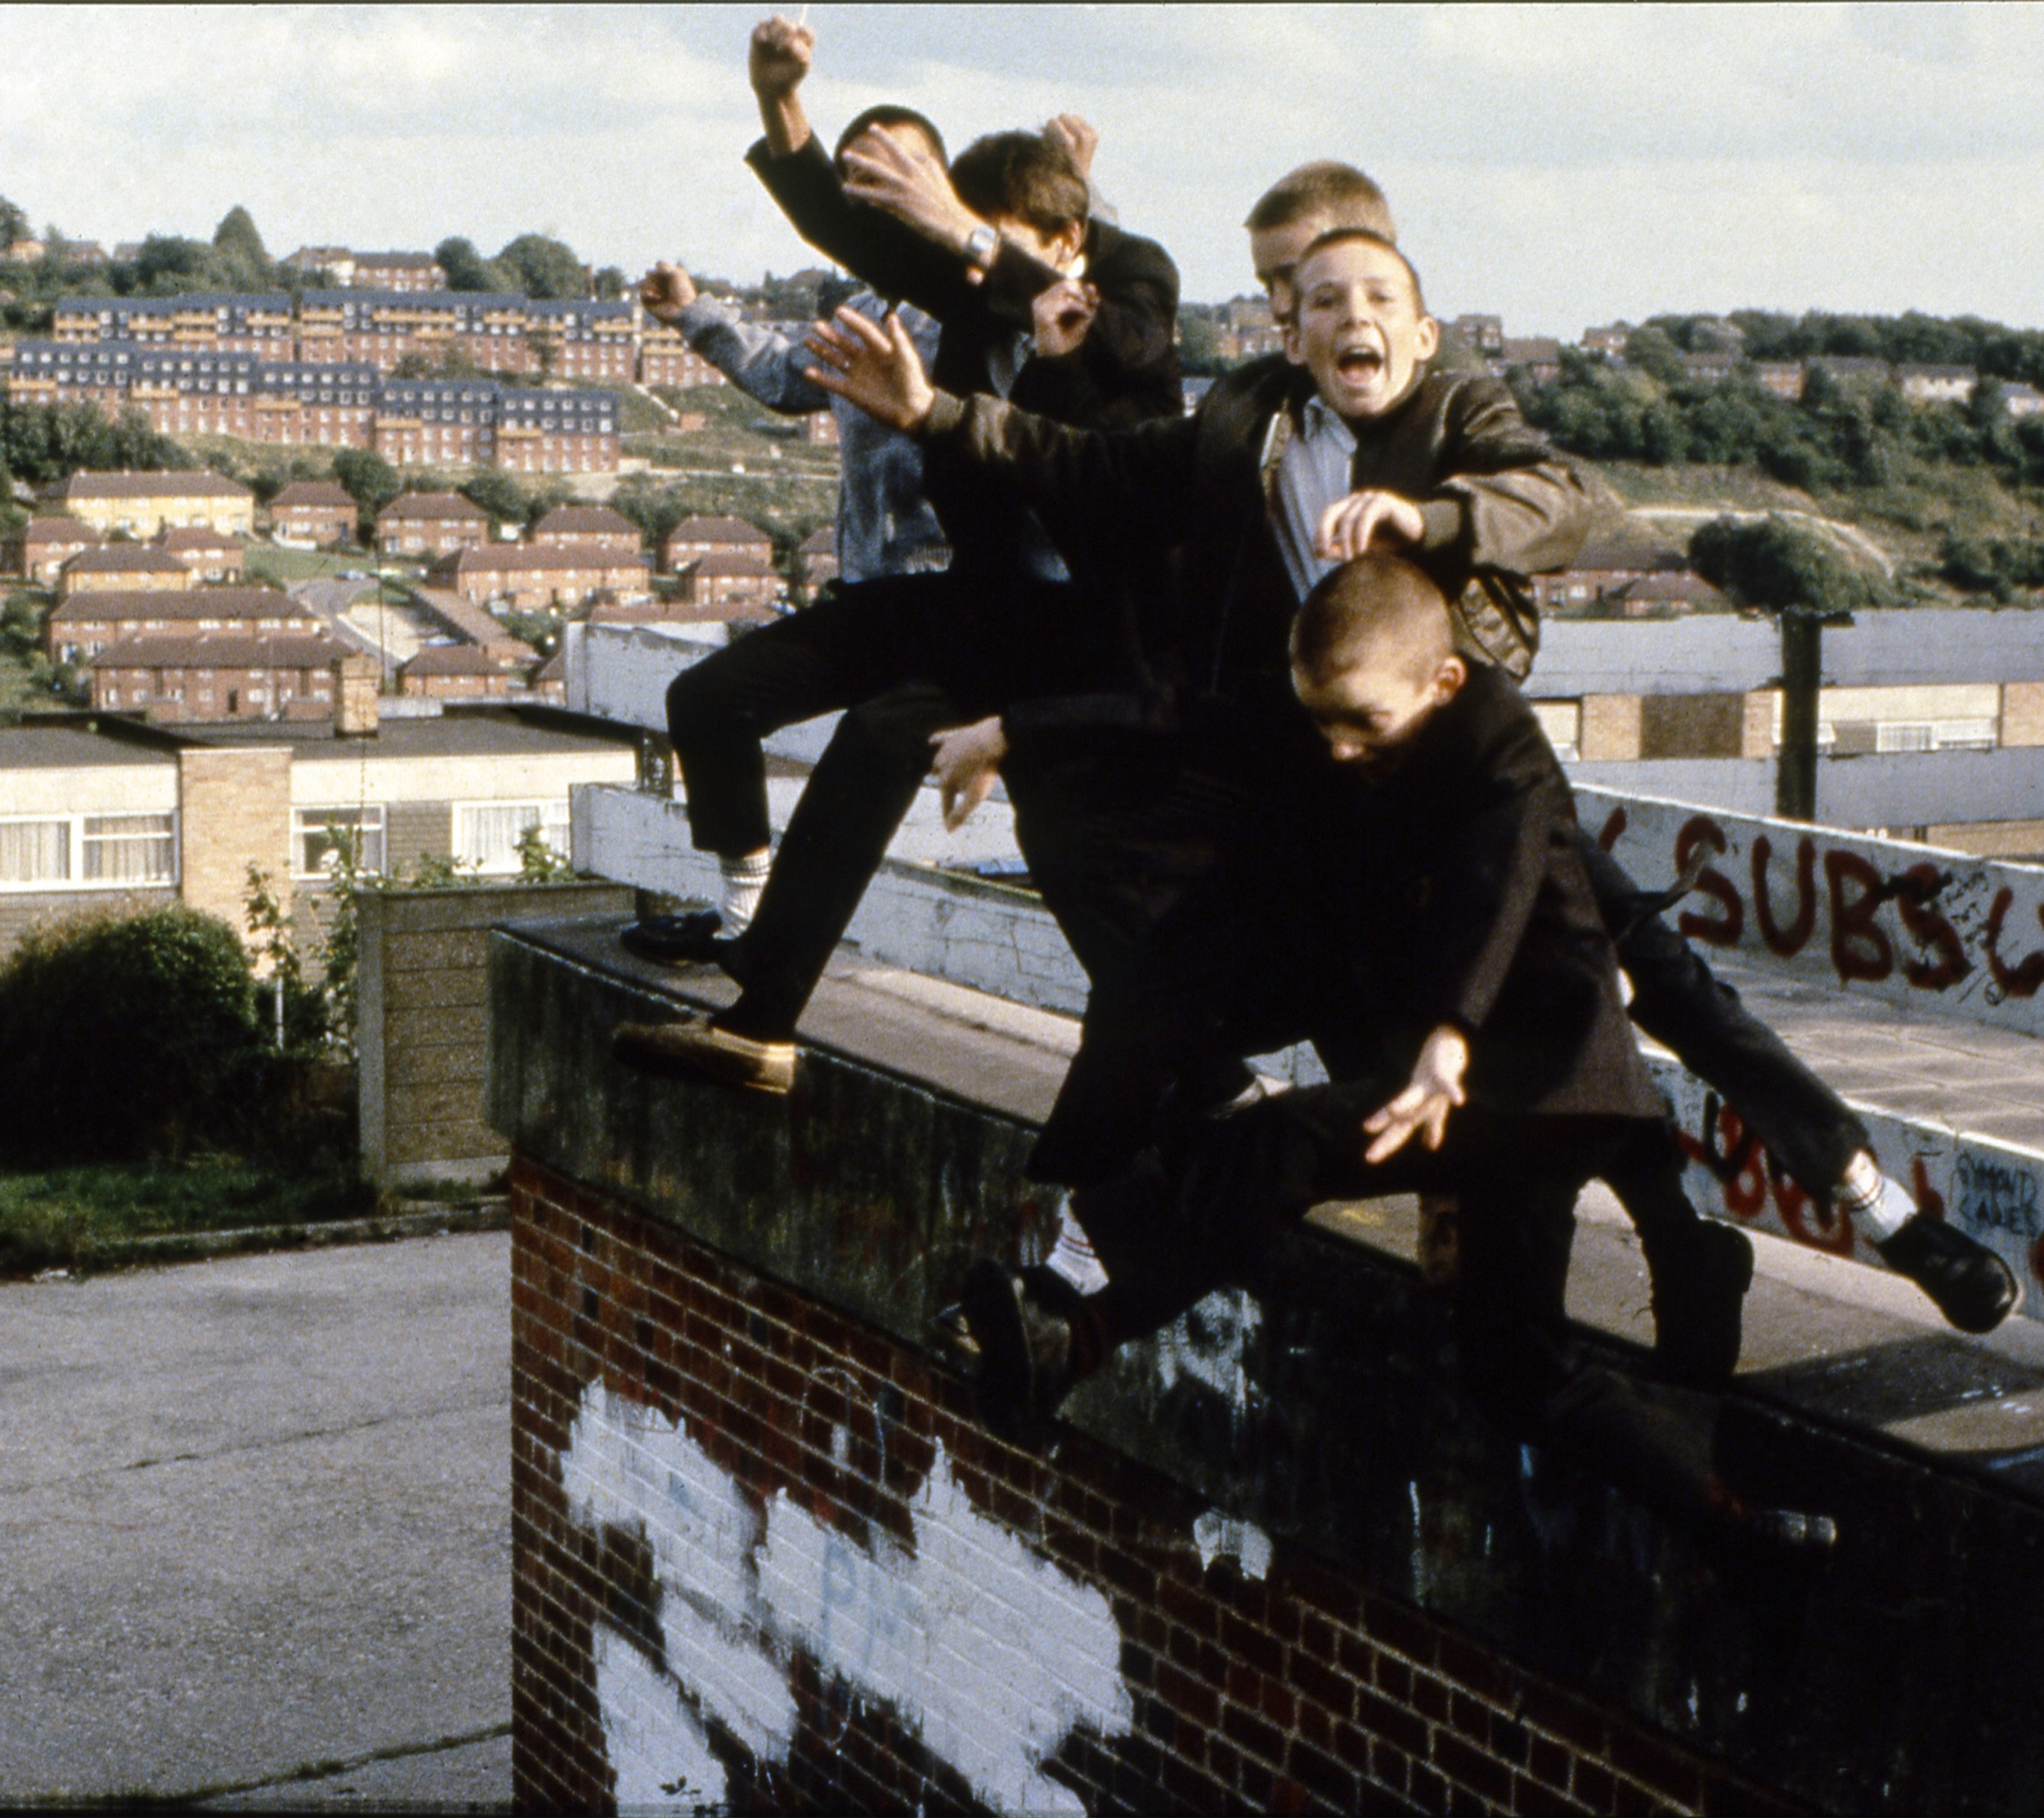 Gavin Watson-Boys Jumping off Roof, High Wycombe, UK, 1980s copy